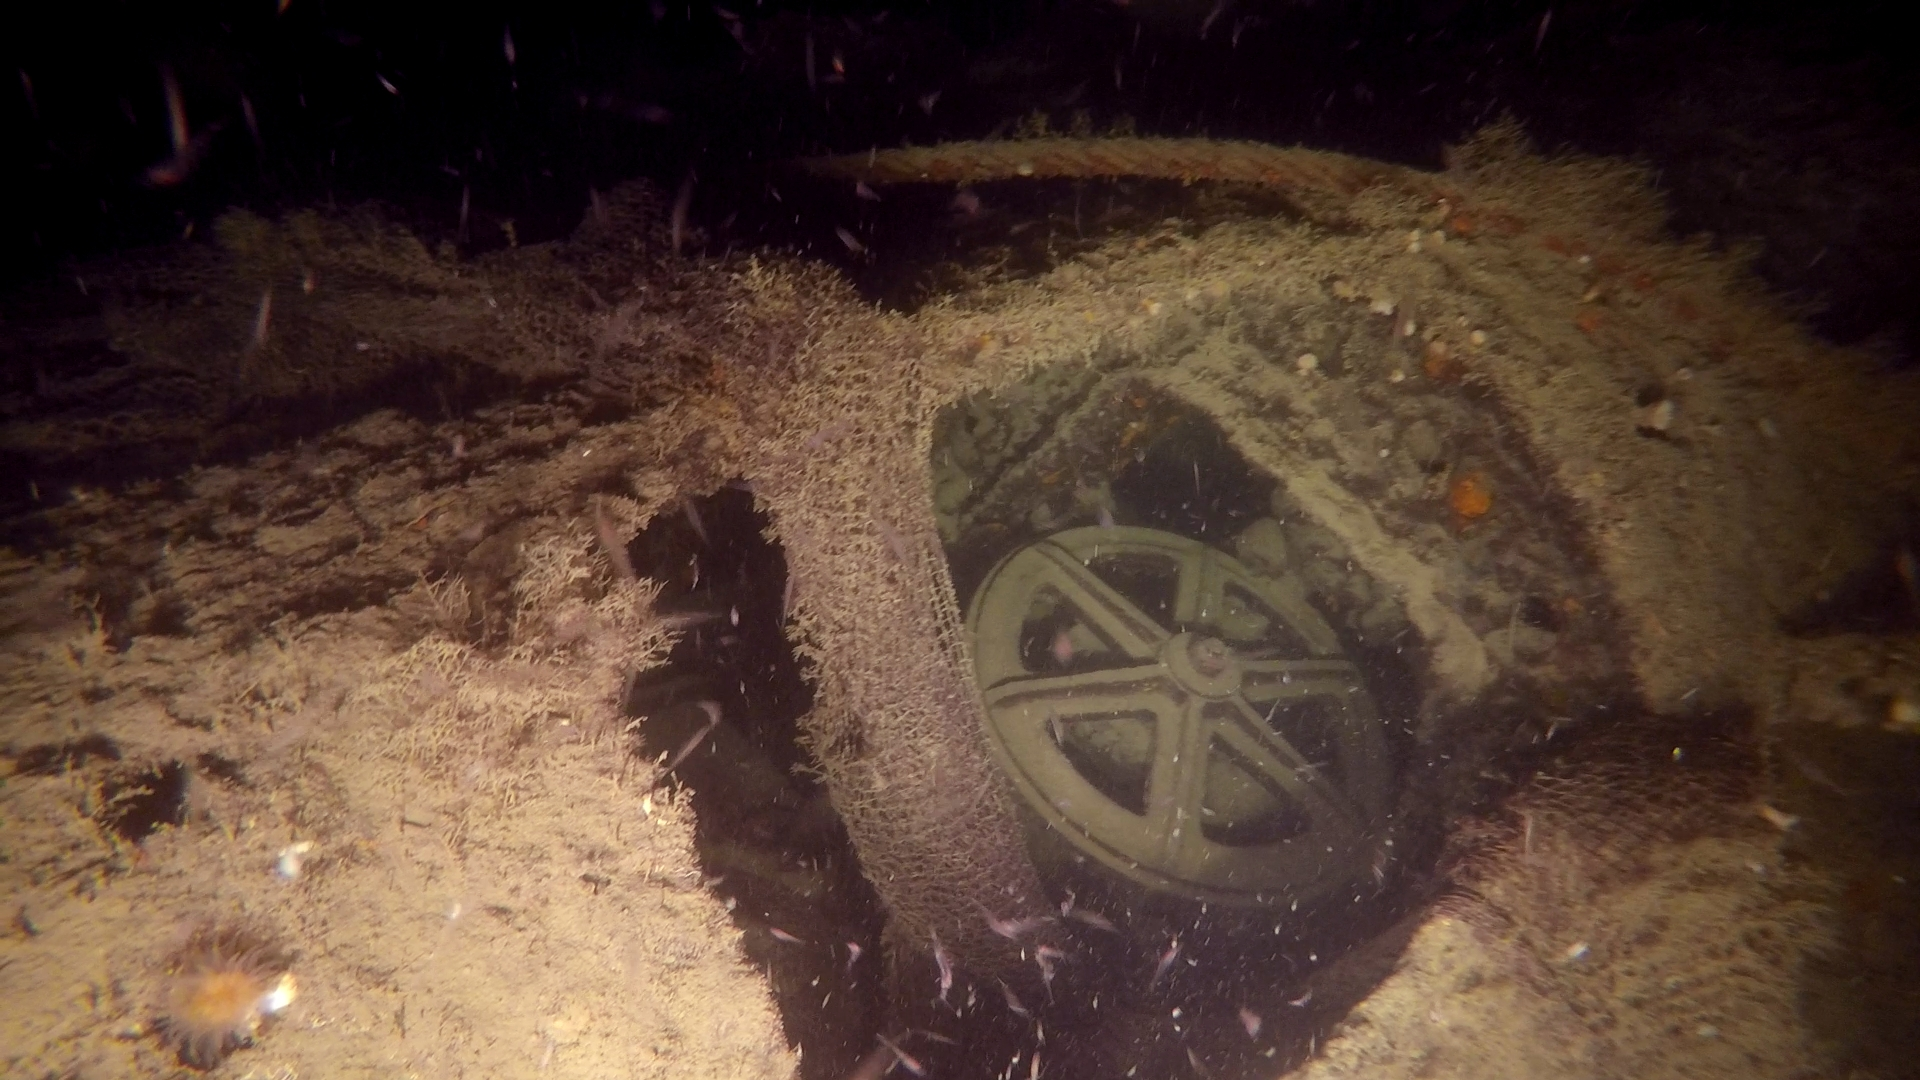 Every object of the WW2 wreck was once used by the crew. Now, these images pay tribute to their sacrifice, a lasting legacy to their struggle for the Allied cause.